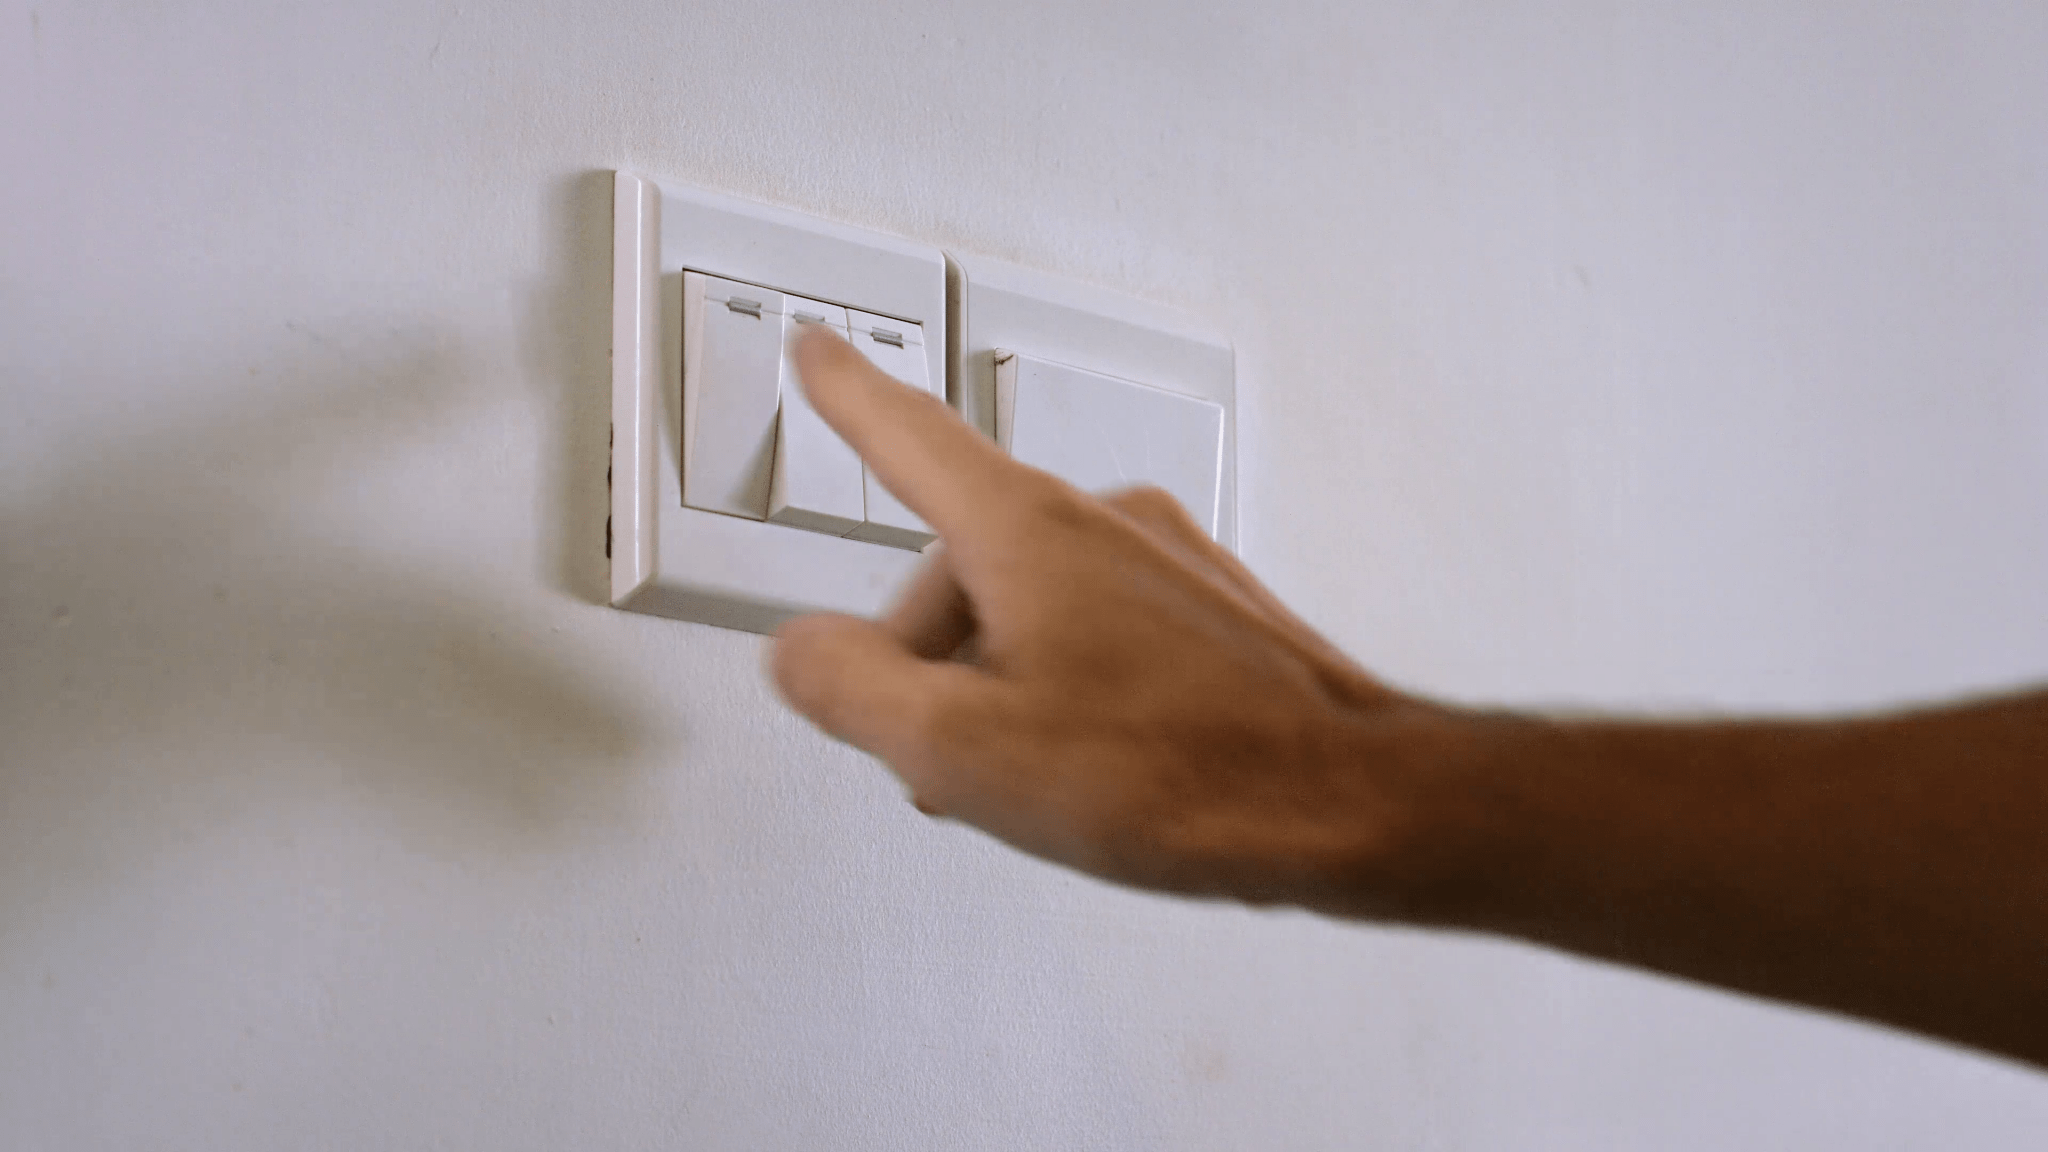 multiple switches for controlling different lights